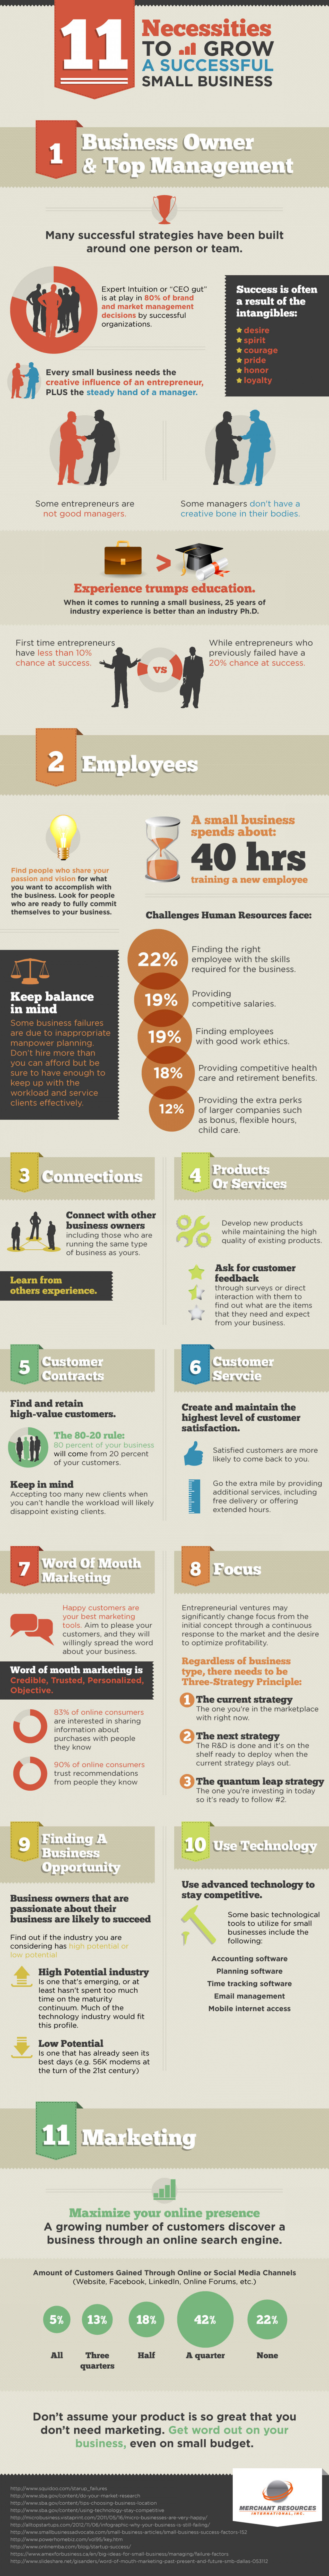 11 Necessities to Grow a Successful Business  Infographic